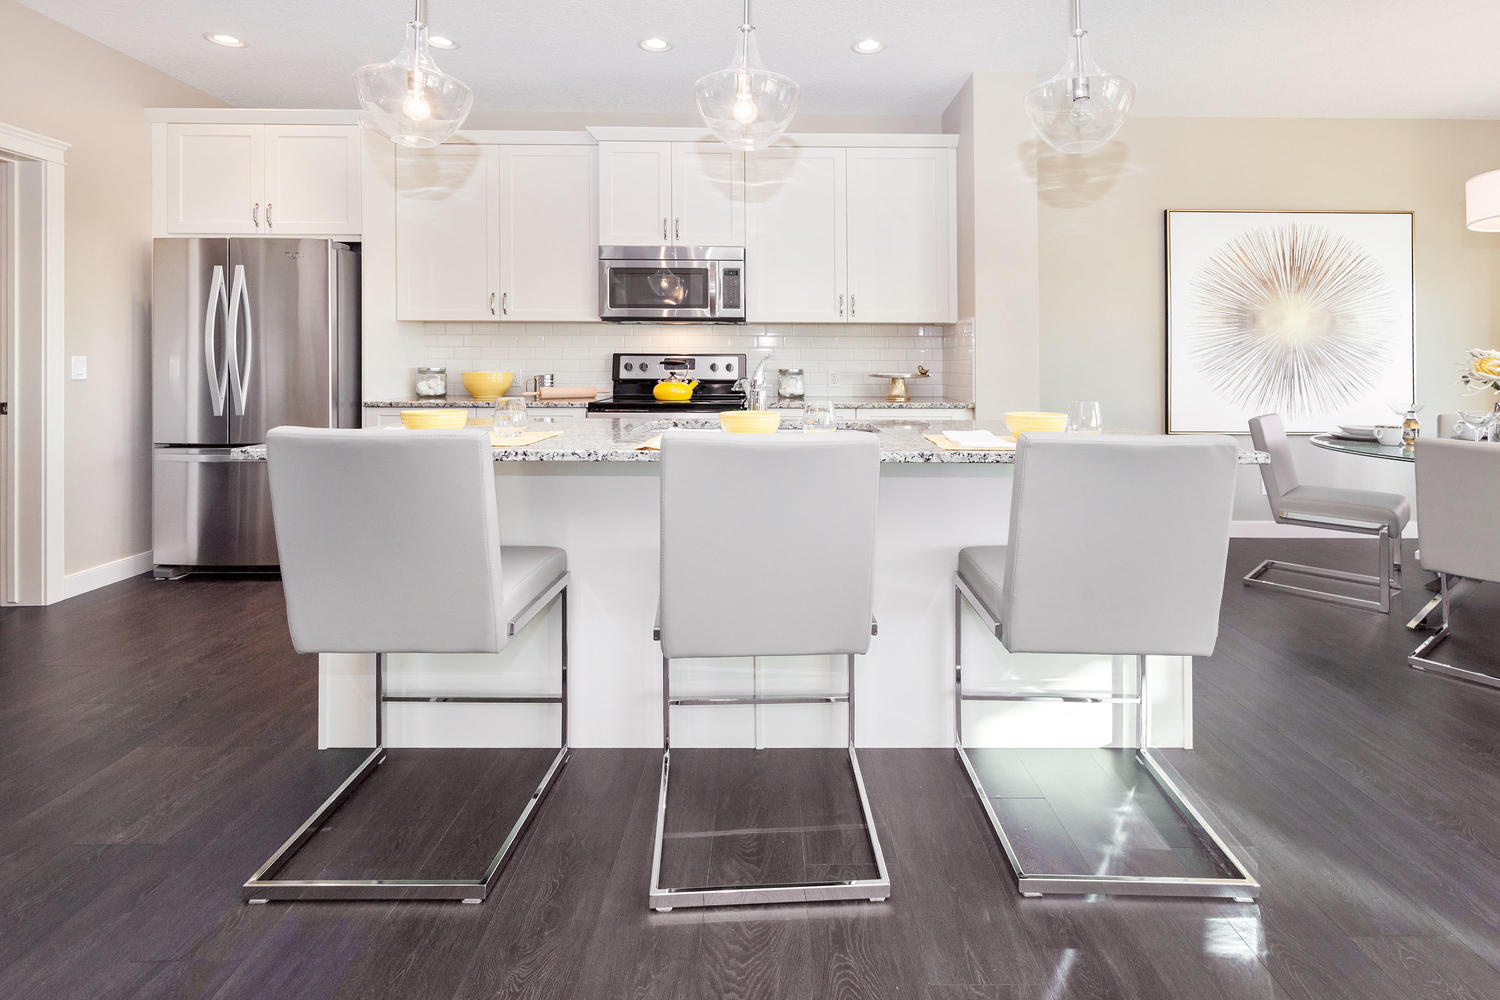 grey bar stools at a large kitchen island in a pacesetter front drive show home.